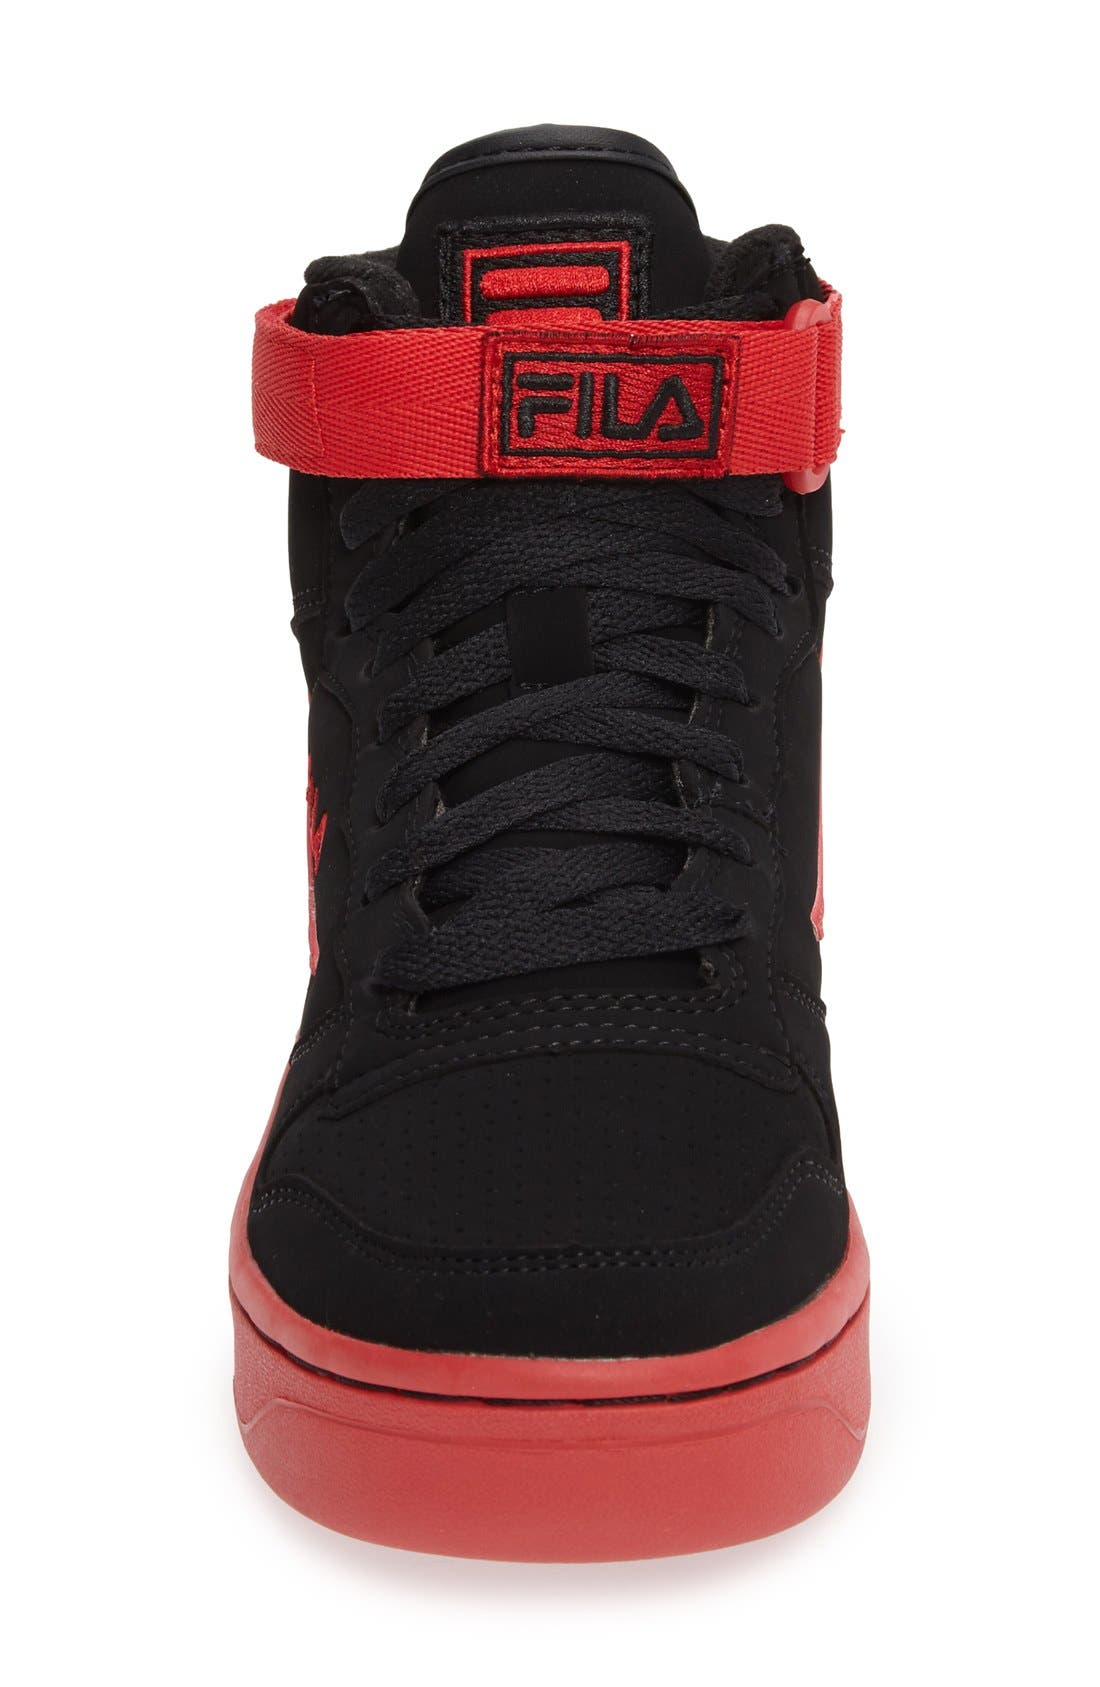 USA FX-100 High Top Sneaker,                             Alternate thumbnail 3, color,                             Black/ Red